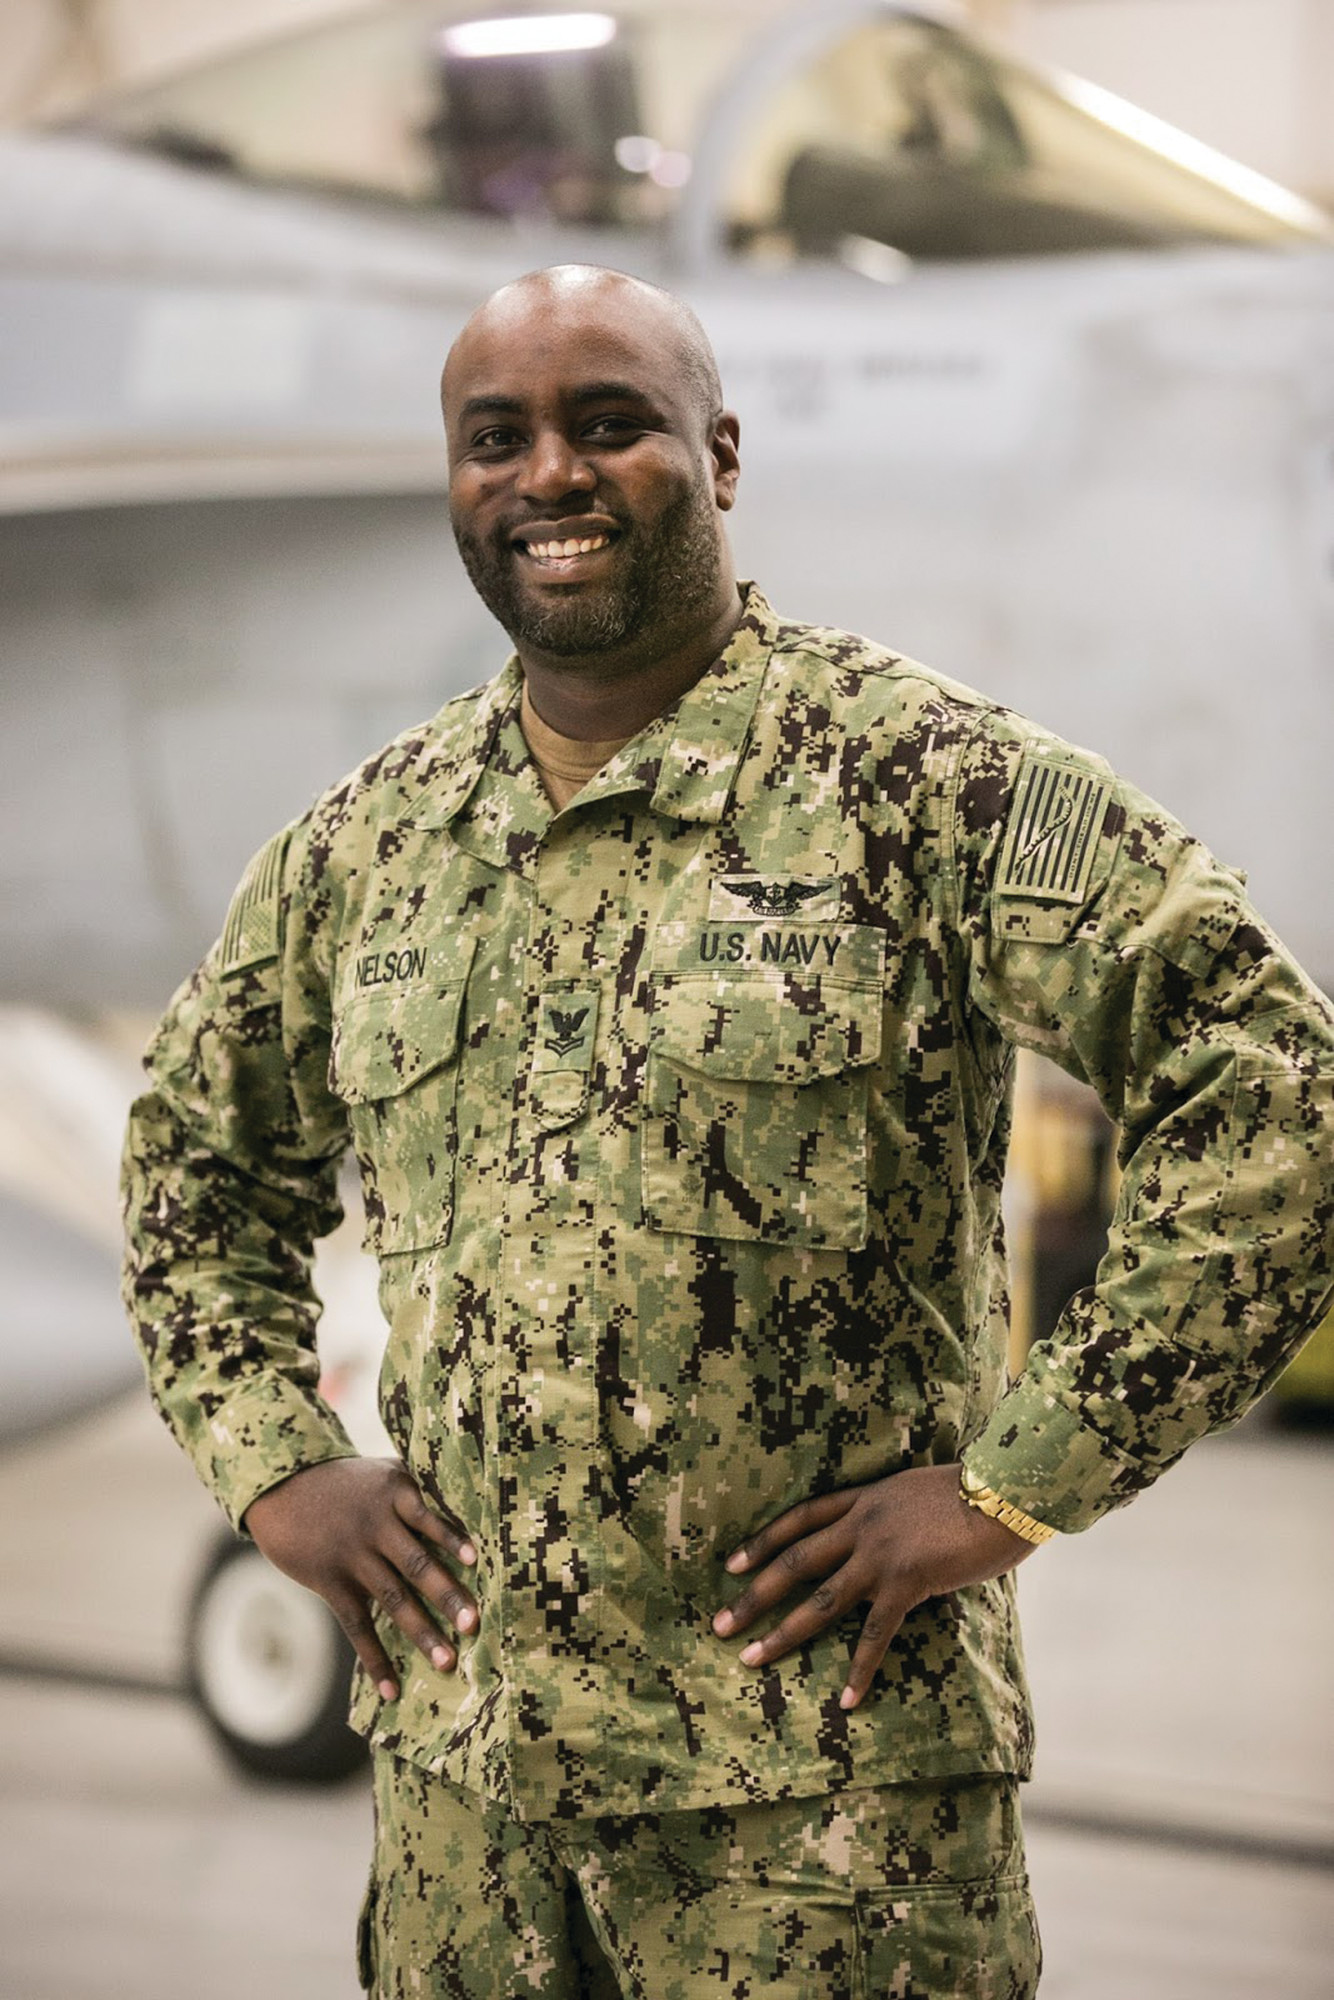 Petty Officer 2nd Class Dwight Nelson, a native of Sumter, is an aviation machinist's mate working with the Strike Fighter Wing Pacific Detachment stationed aboard Naval Air Station Fallon, Nevada.